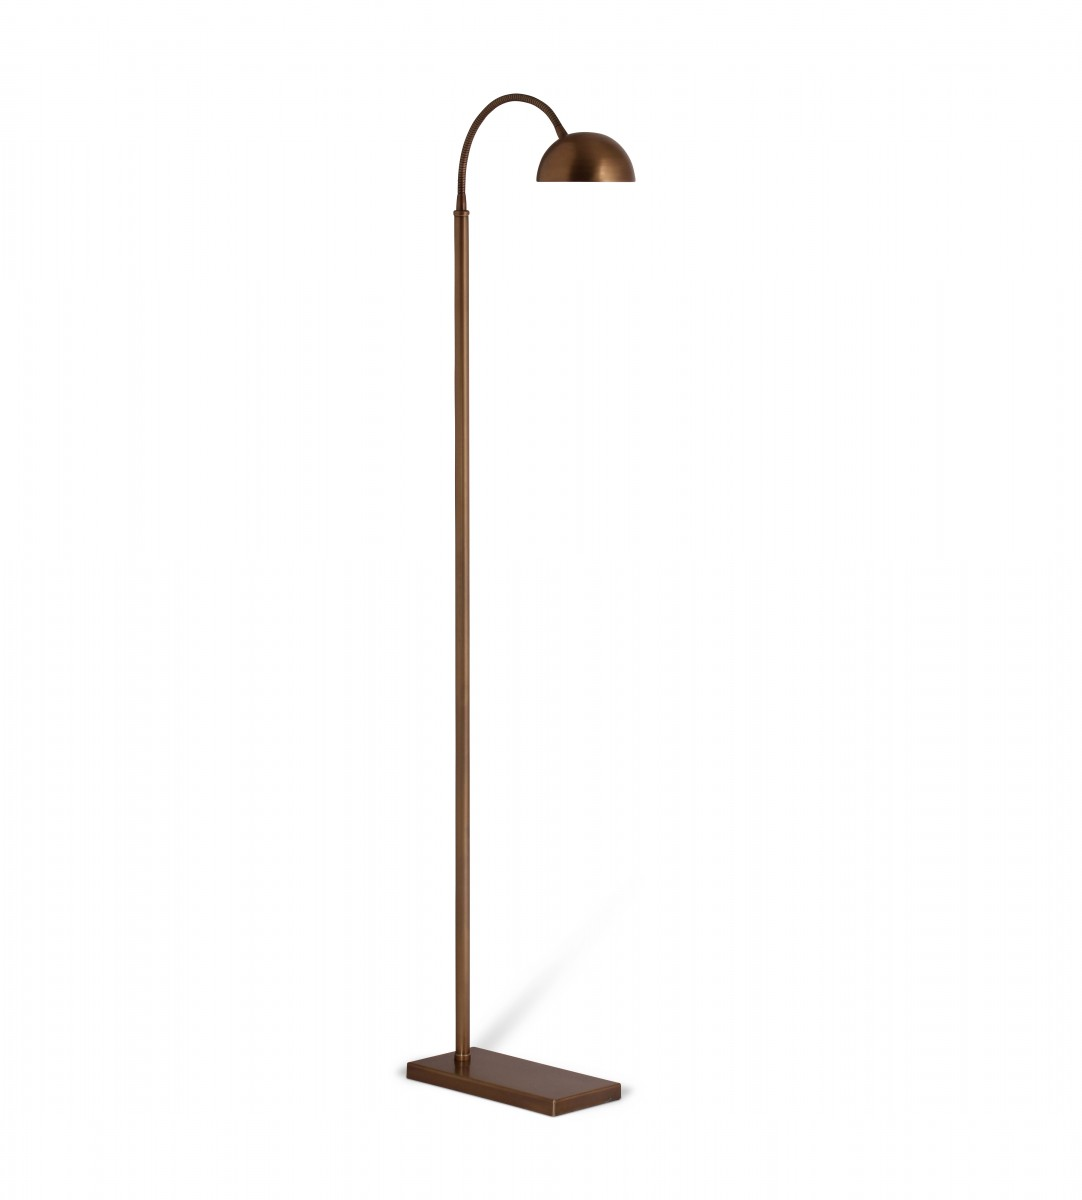 Image of: Arc Floor Lamp Mfl46 Luminaire Floor Lamps Porta Romana